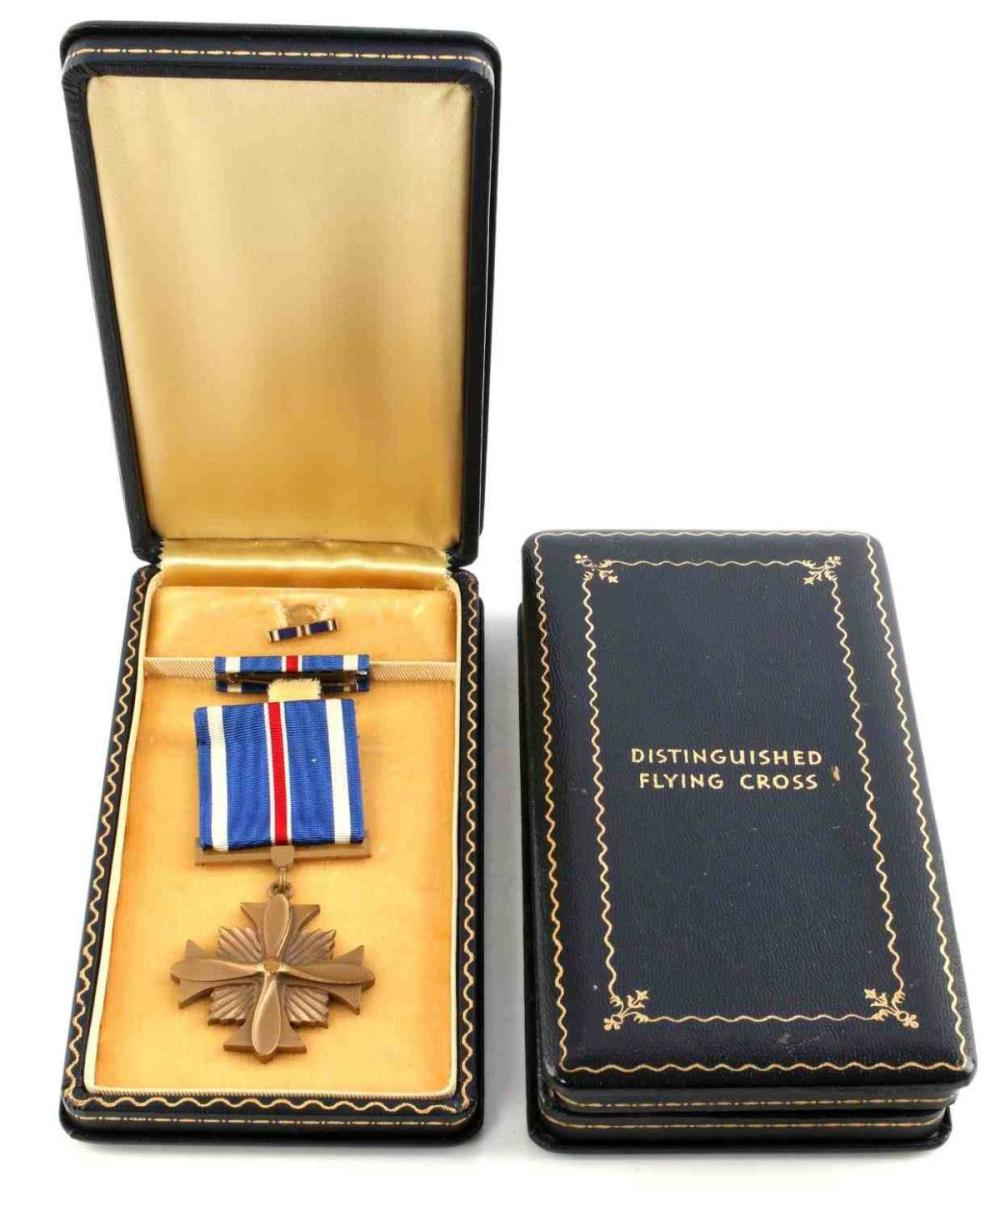 WWII CASED US DISTINGUISHED FLYING CROSS & CASE